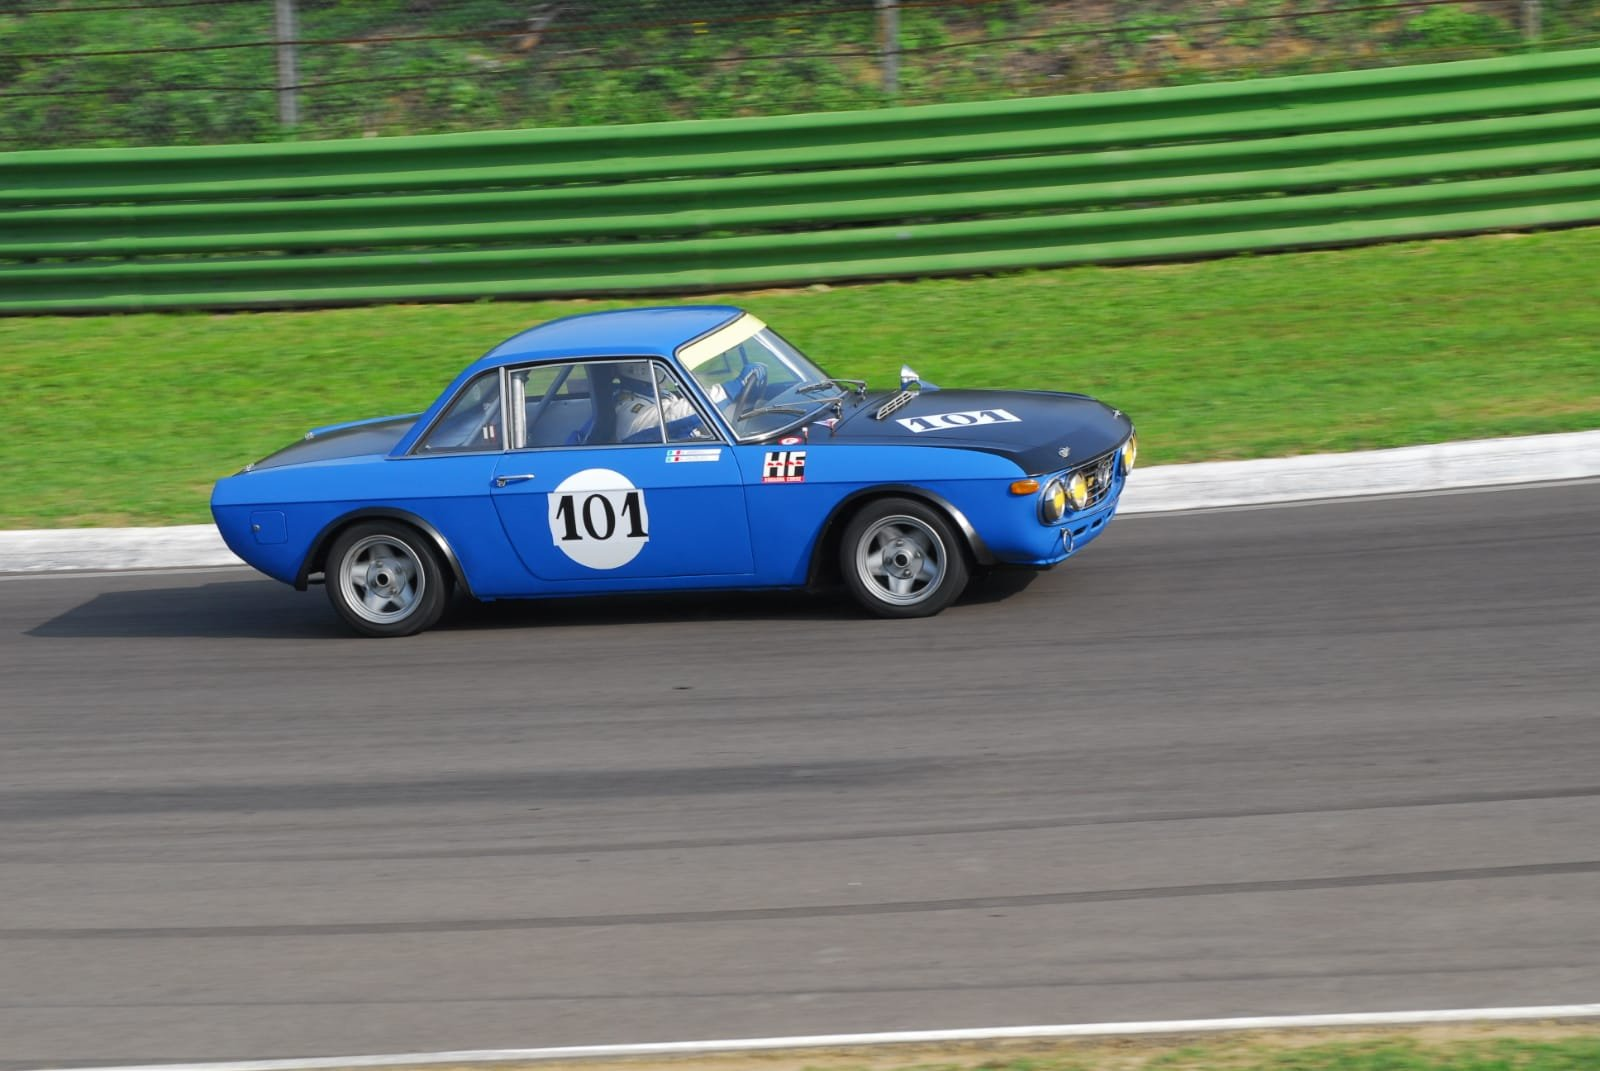 1970 Lancia fulvia rally for race gr4 For Sale (picture 2 of 4)